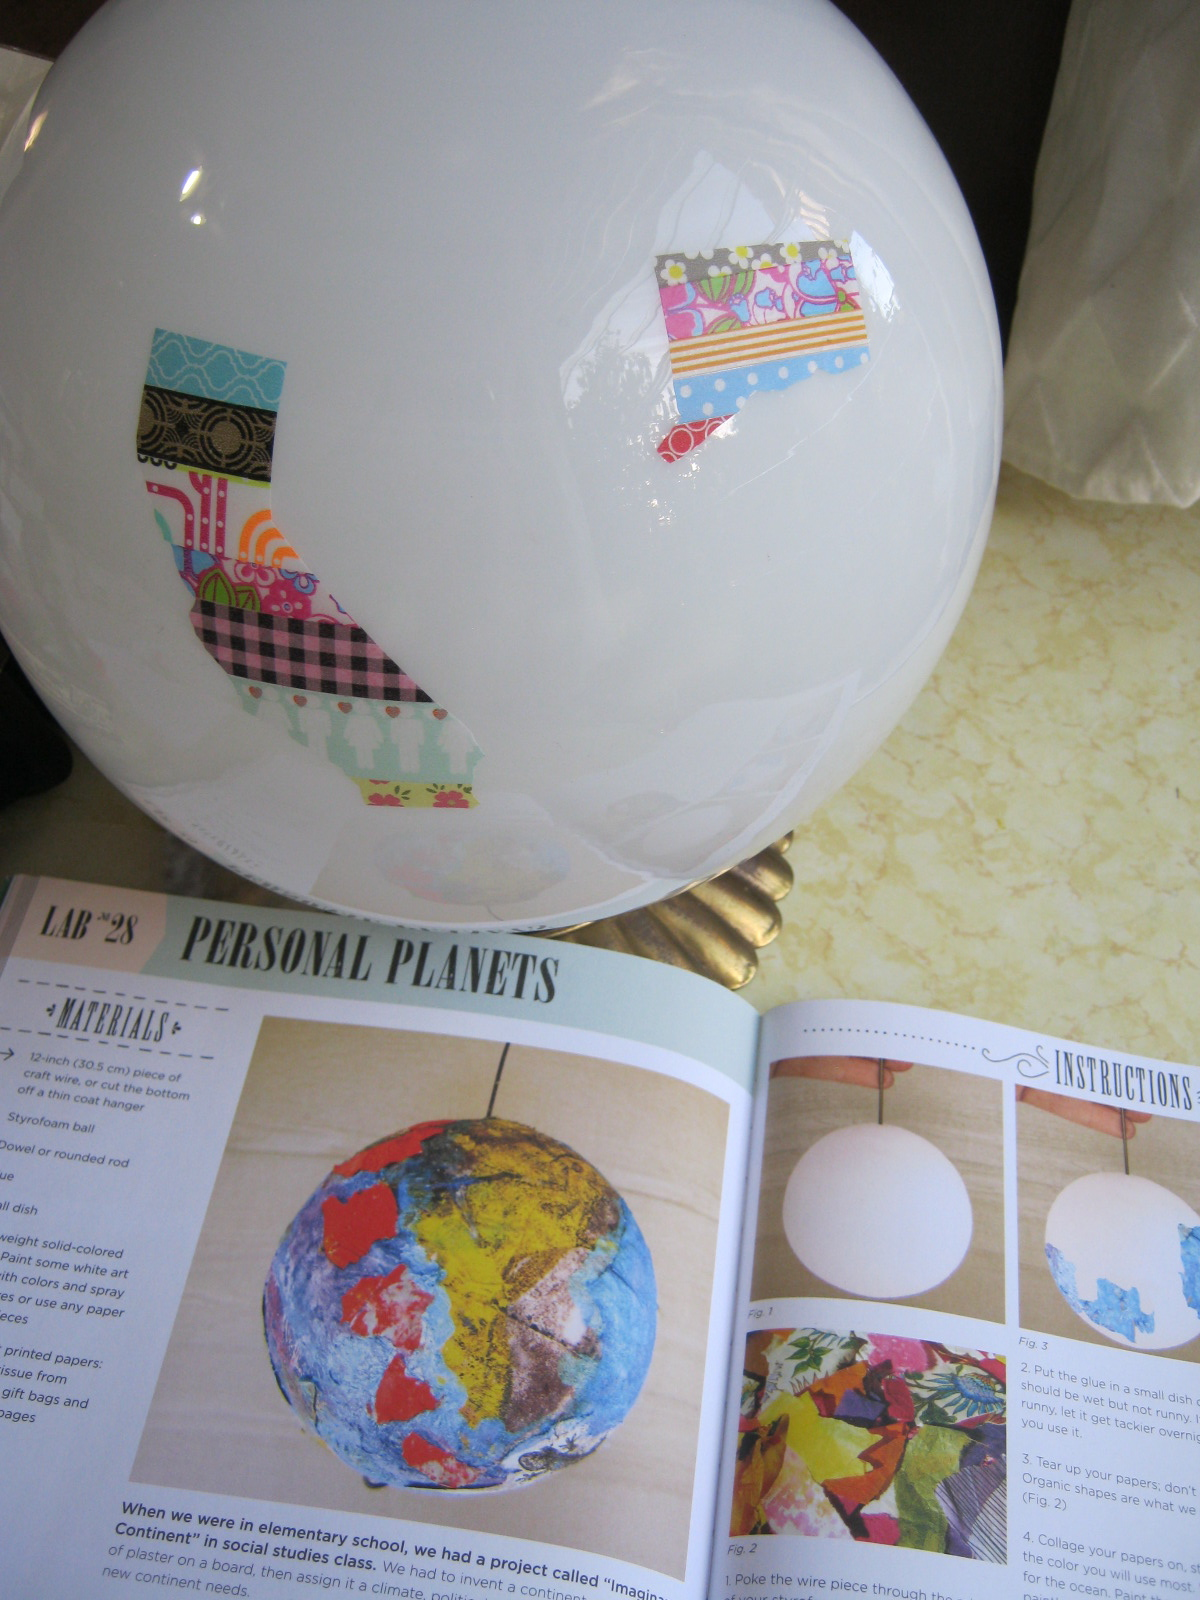 Map art lab blog hop and how to make a personal planet quarto how to put washi shapes on lamp gumiabroncs Images